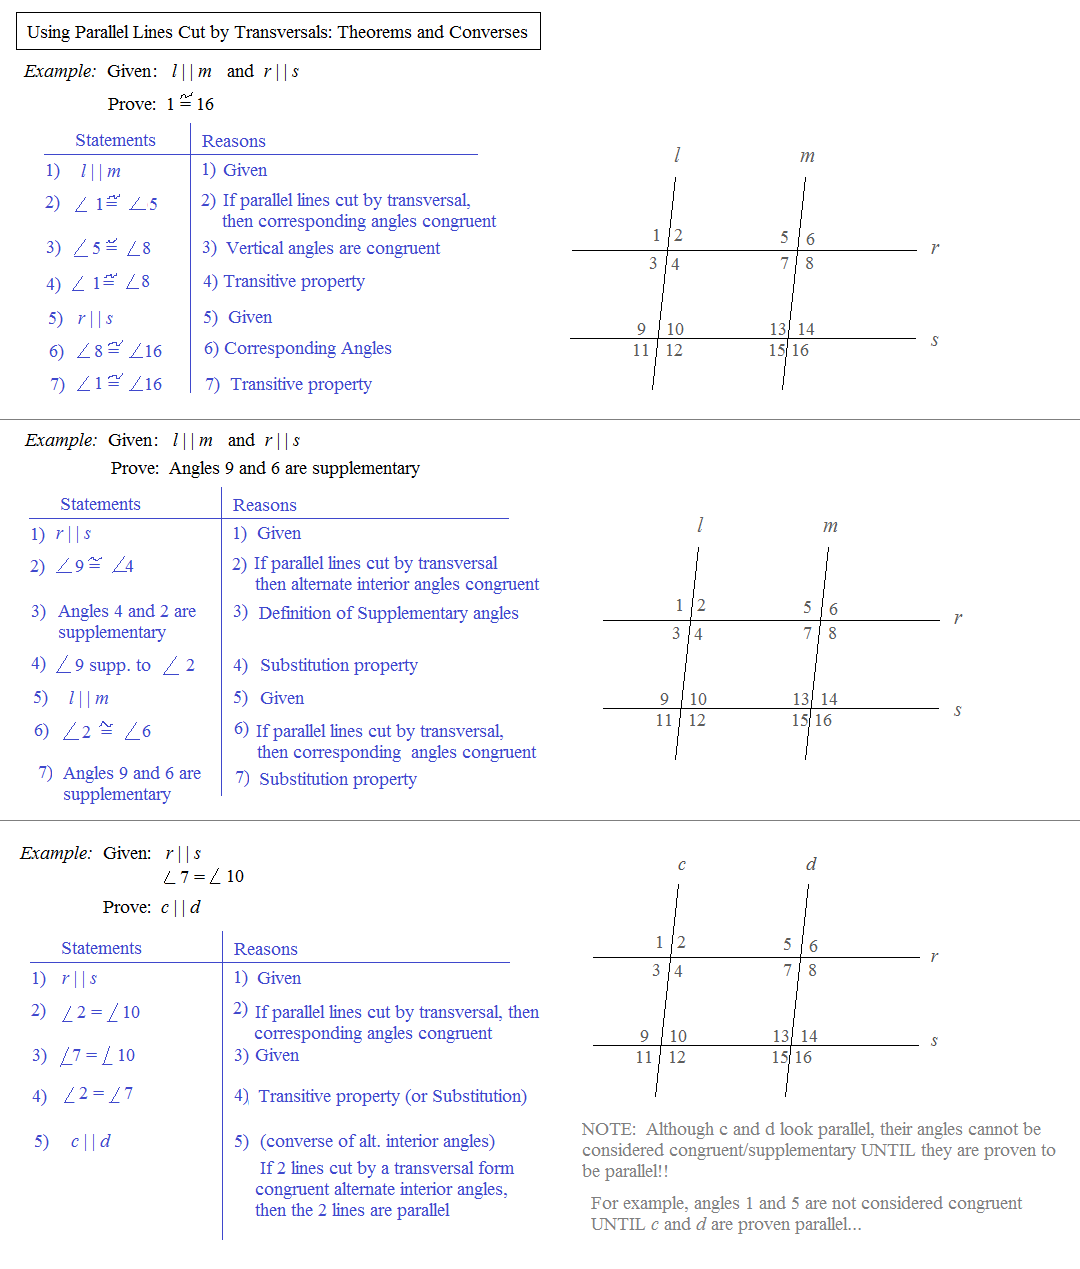 worksheet Angles And Parallel Lines Worksheet math plane parallel lines cut by transversals transversal examples using theorems converses